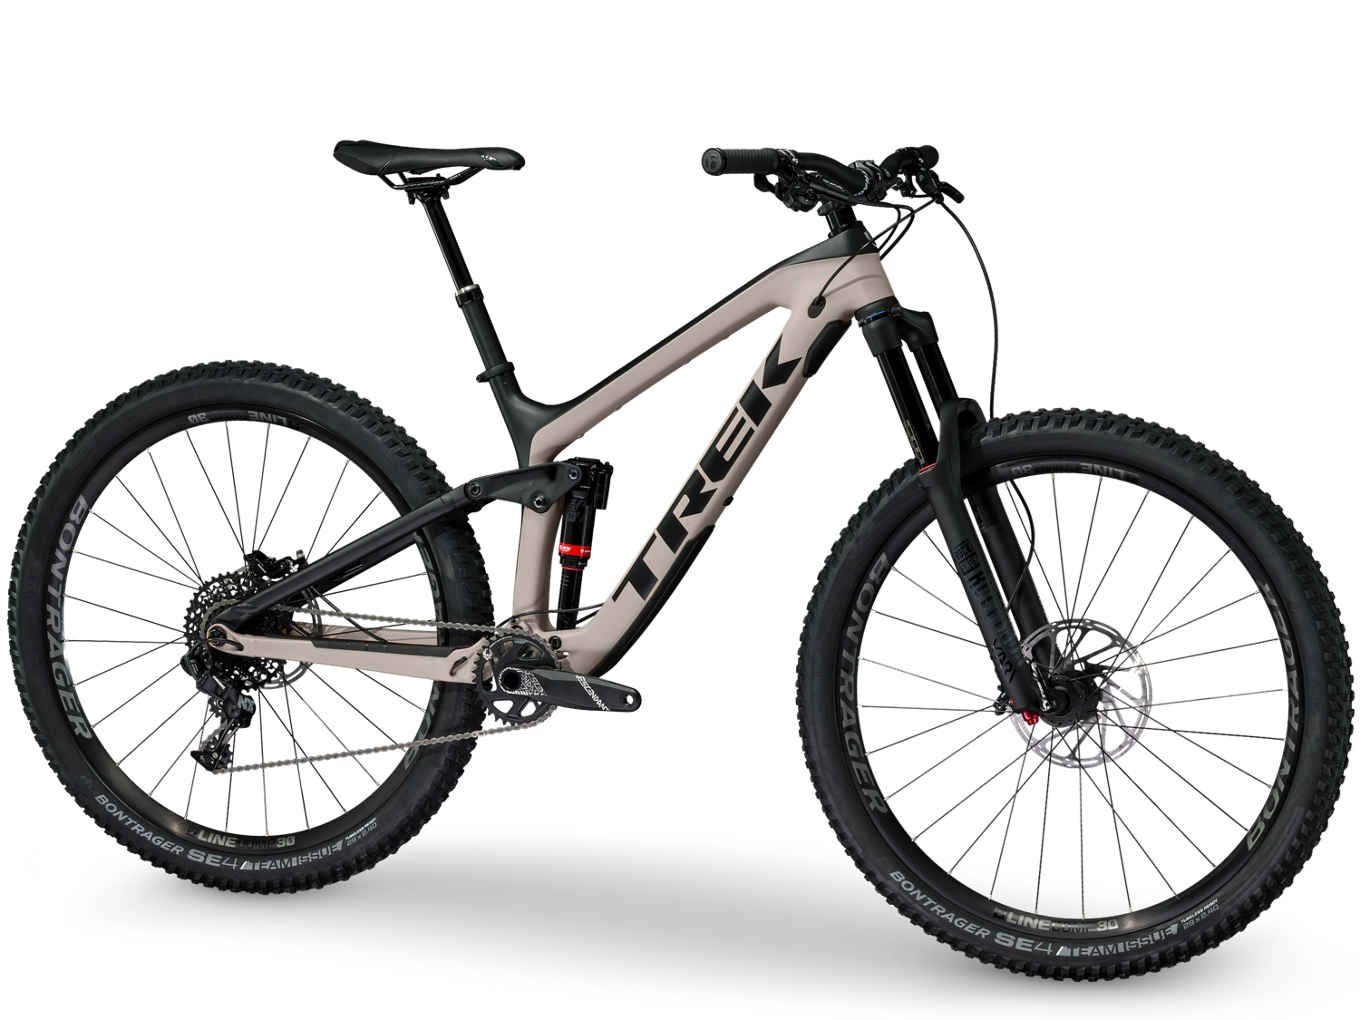 8b337233f96 Trek Slash 9.7 29 2018 Matte Trek Black/Sandstorm Mountain Bike. 1 ...